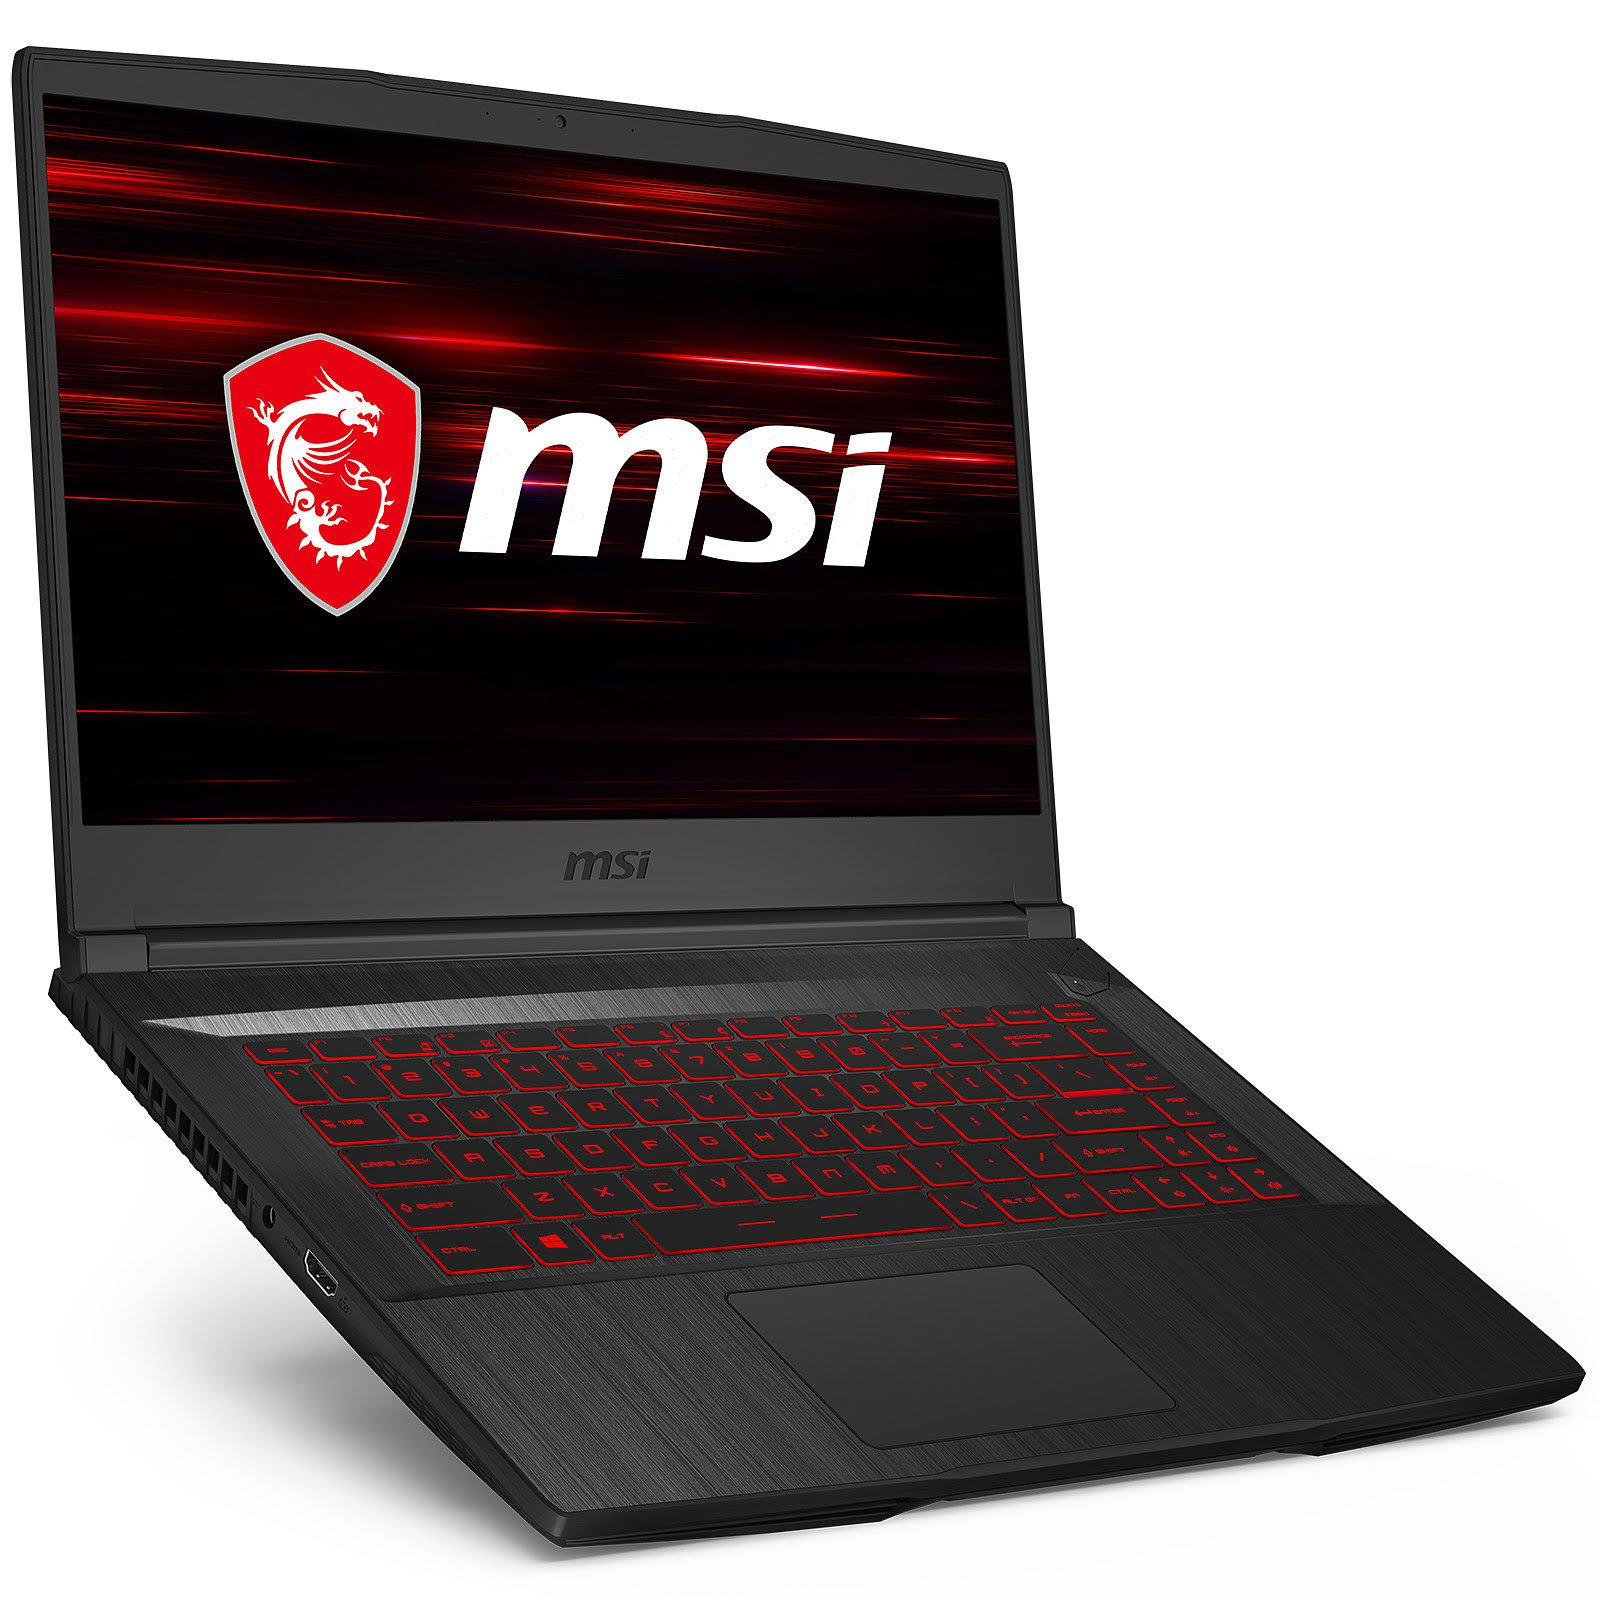 MSI 9S7-16W212-041 - PC portable MSI - Cybertek.fr - 4